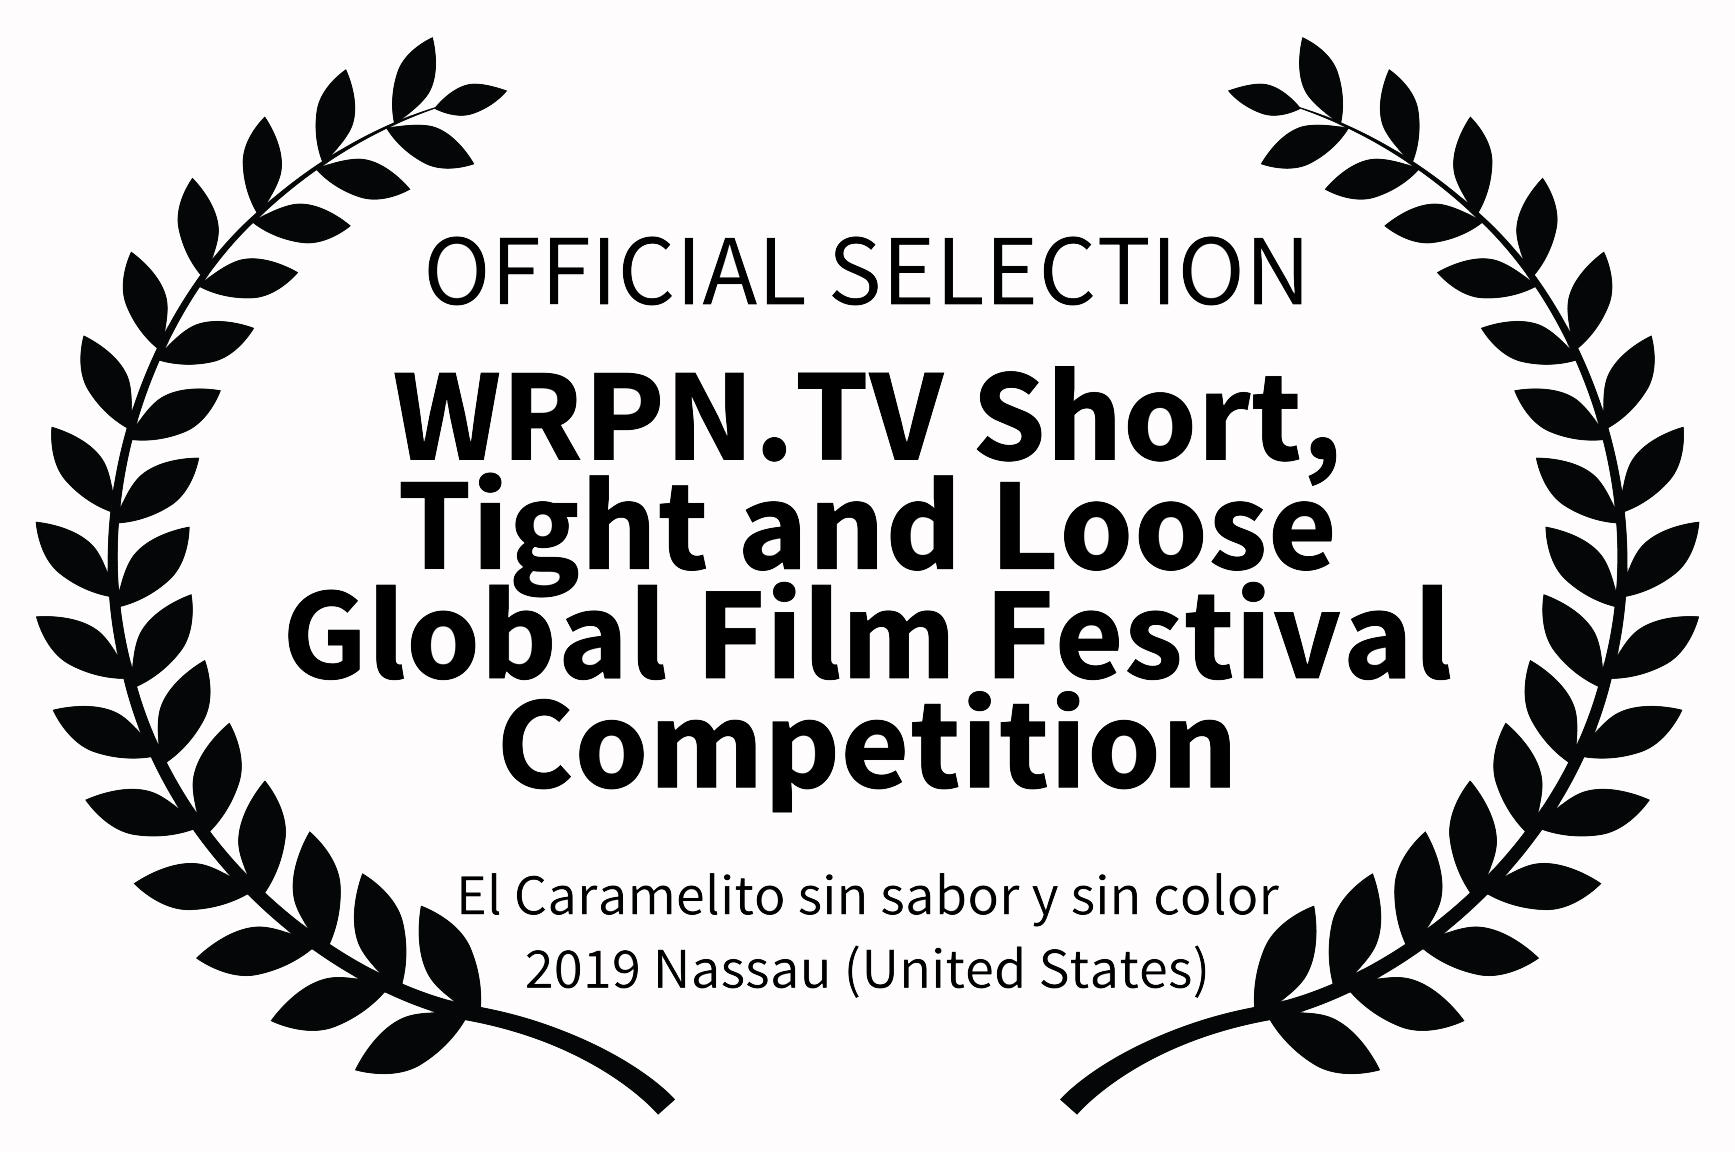 ELCARAMELITO-OFFICIAL SELECTION - WRPN